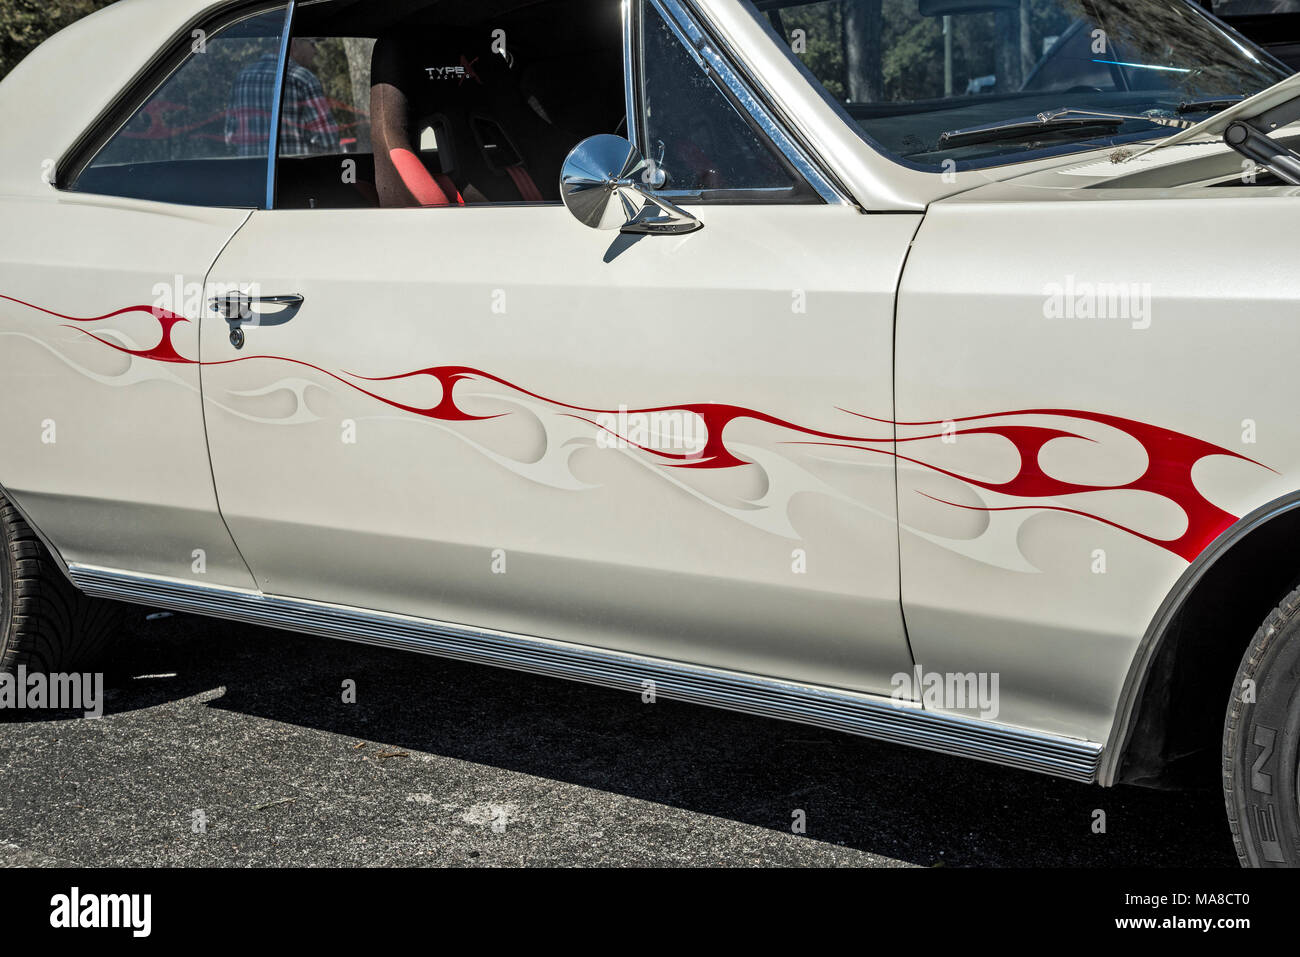 Car Wrap Stock Photos Amp Car Wrap Stock Images Alamy